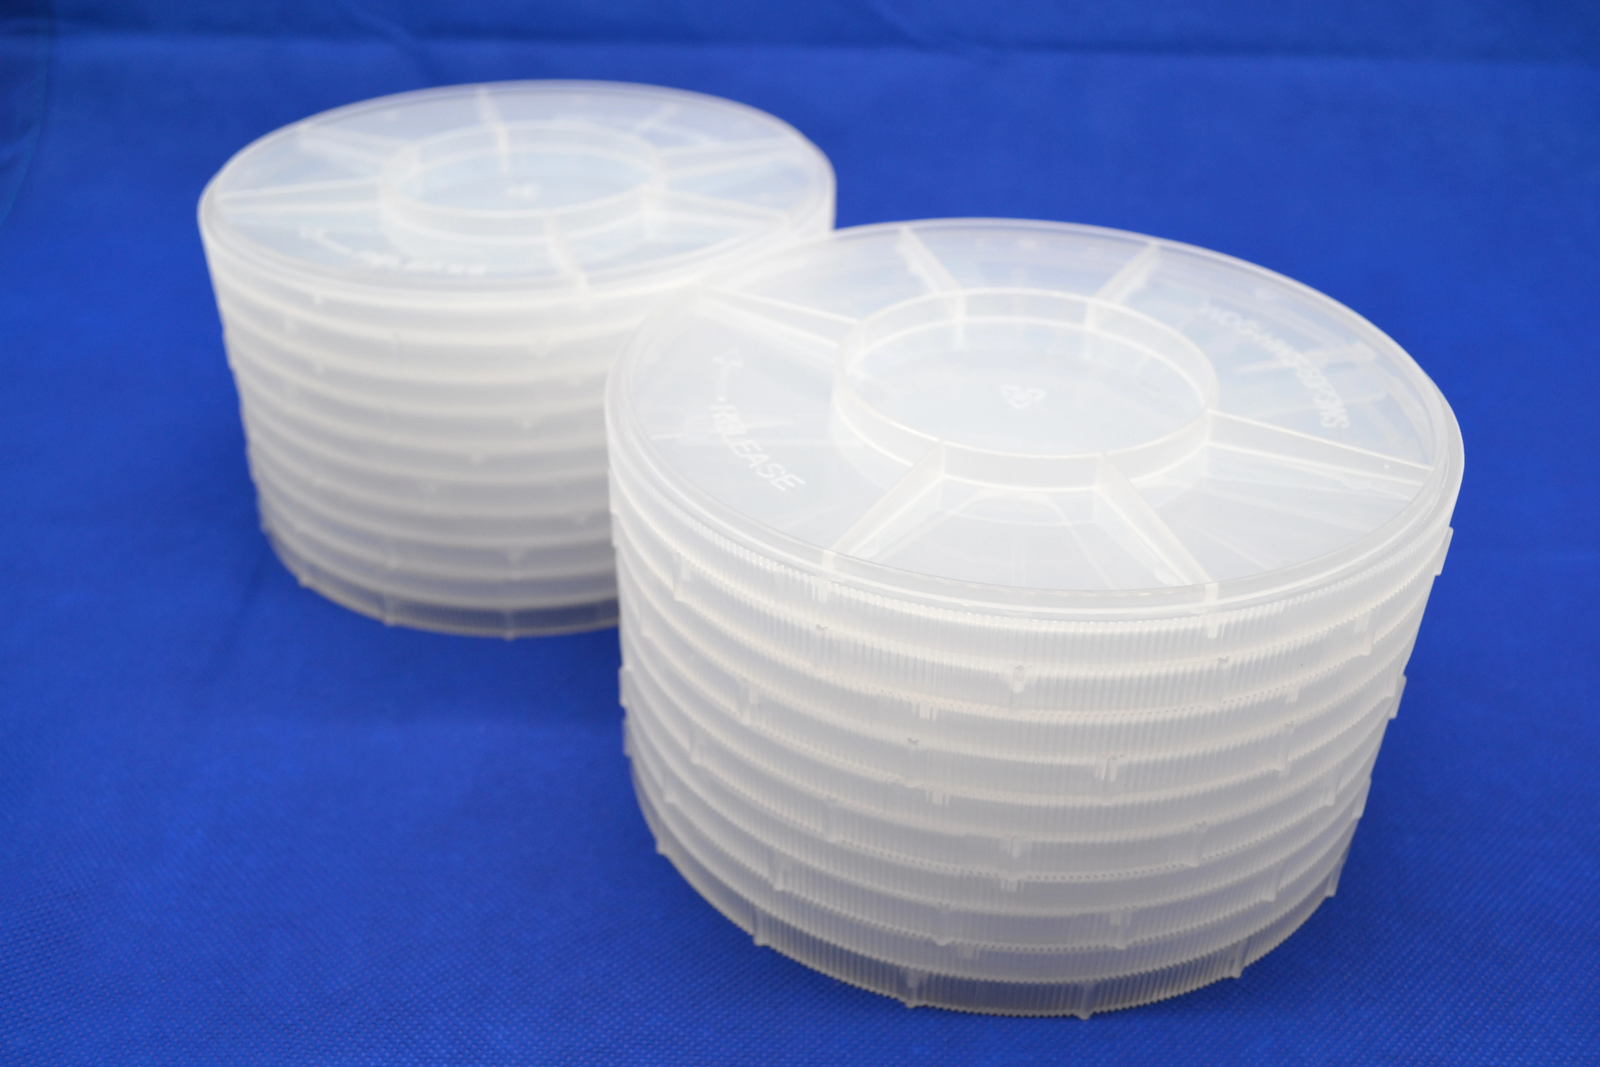 6 Inch Single Wafer Carrier Case (Pack of 10), Polypropylene, Cleanroom Class 10